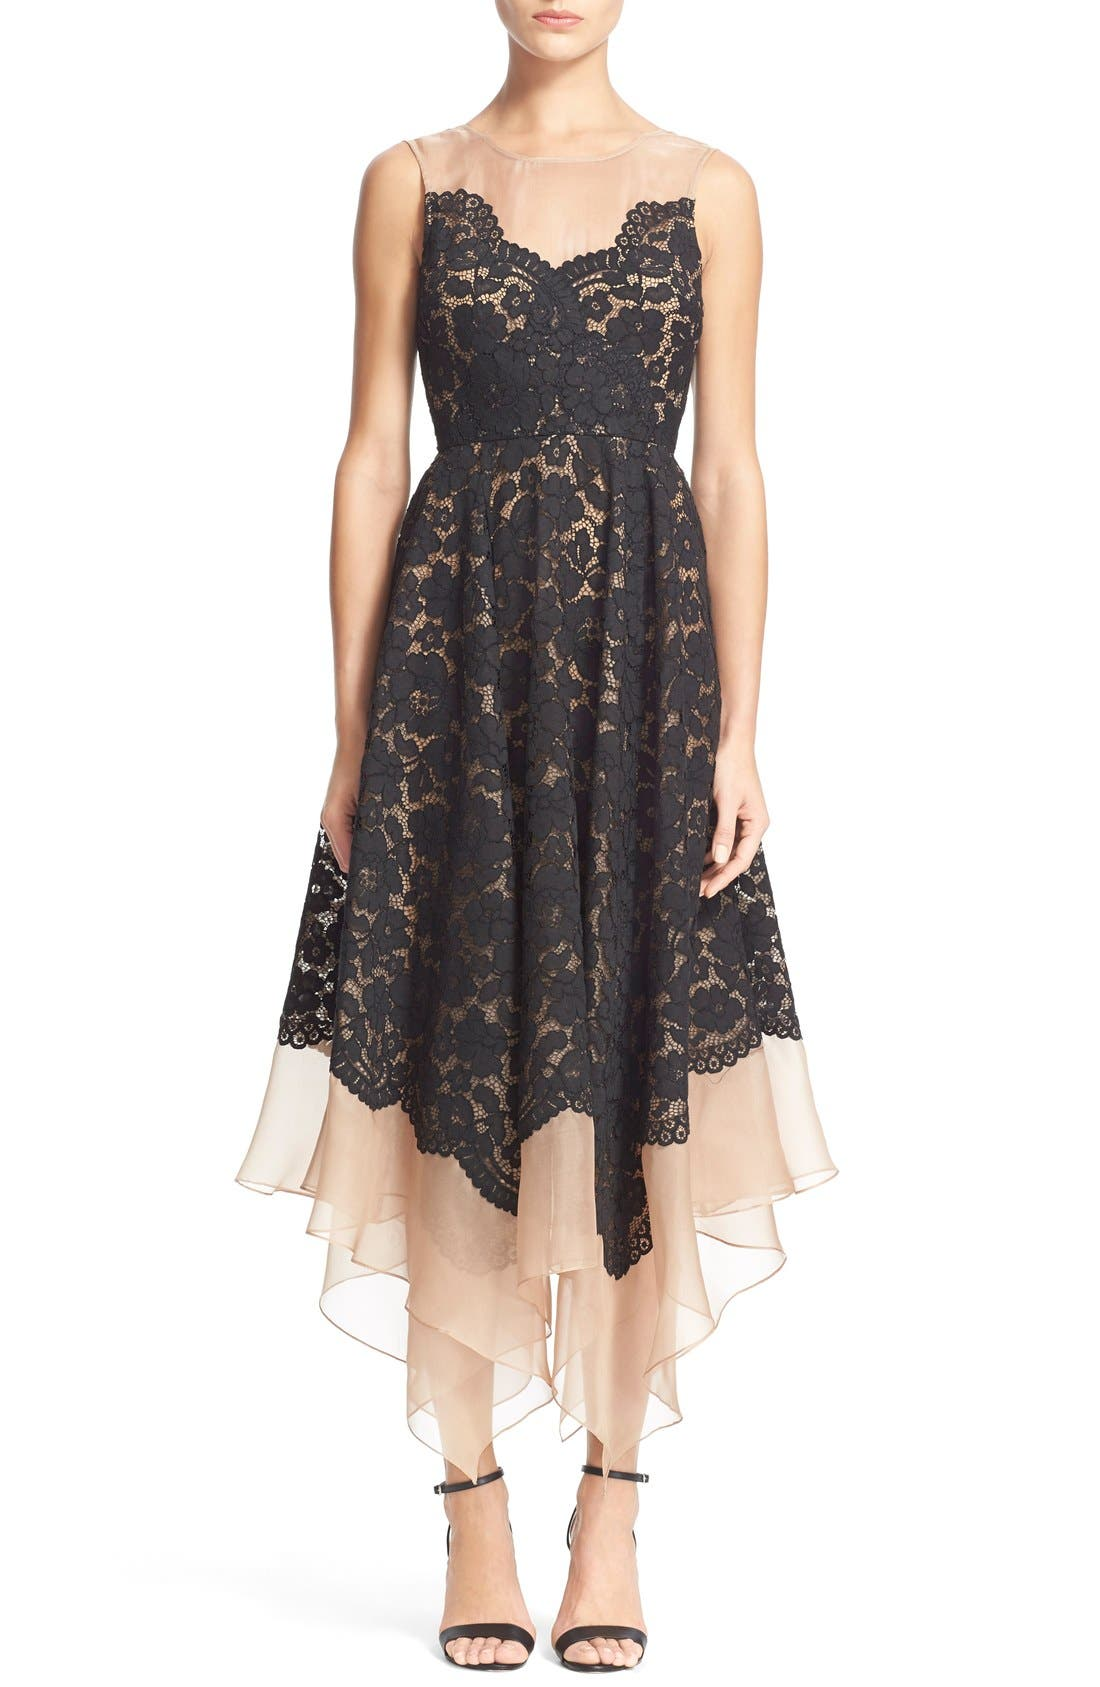 Alternate Image 1 Selected - Tracy Reese Lace Overlay Handkerchief Illusion Dress